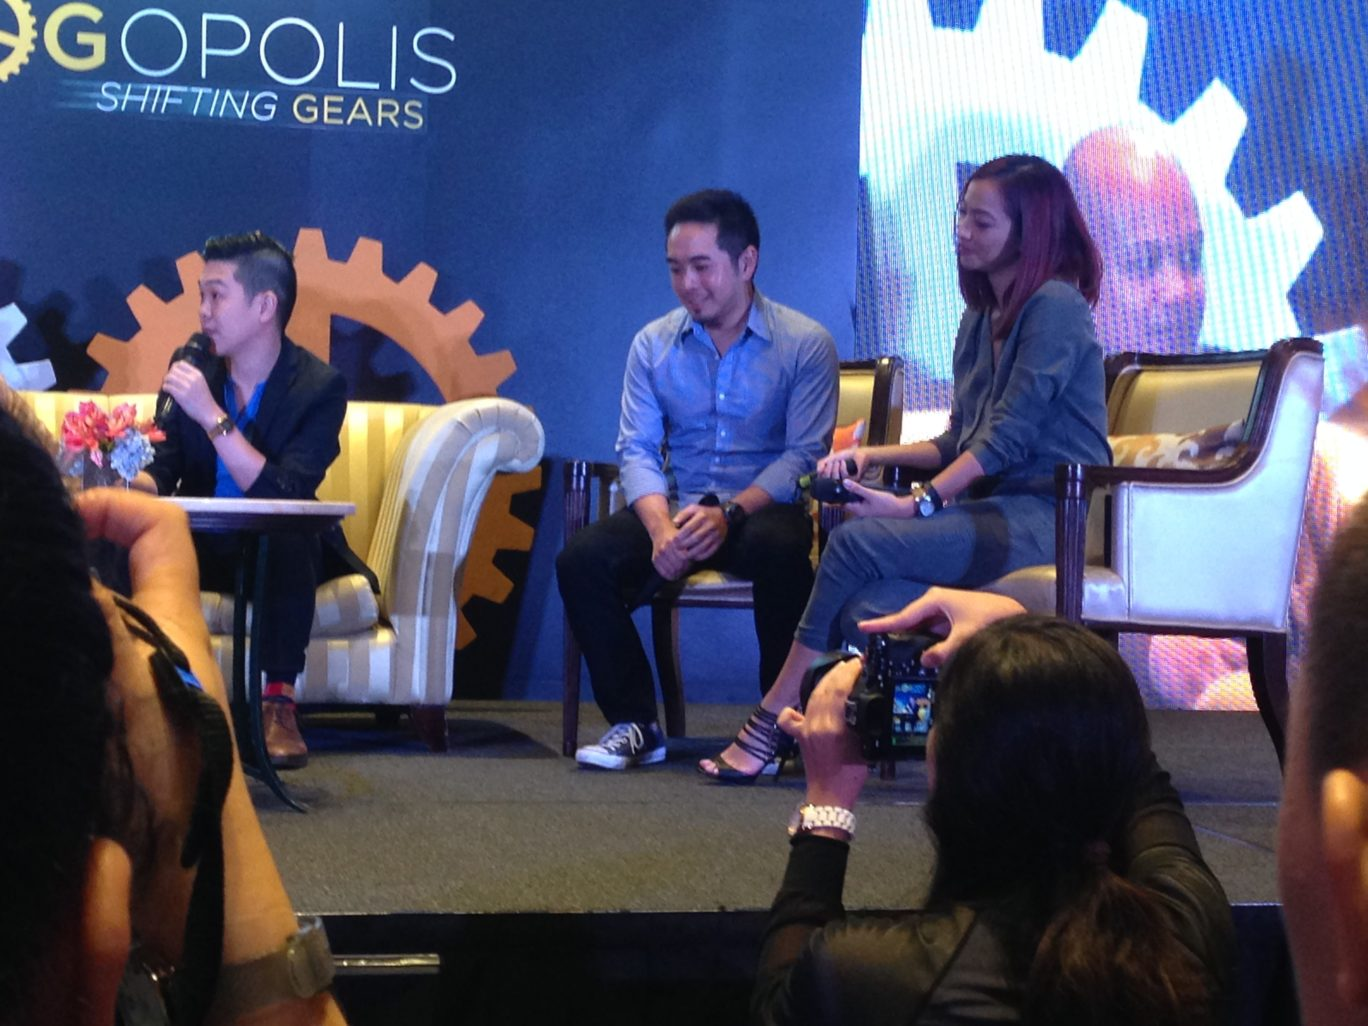 I was also too attentive to Michael Josh Villanueva and Jackie Go that I failed to take photos during their talks. Michael Josh quit his job as a tech journalist to become  a full-time Youtuber while Jackie Go is an active mommy blogger.